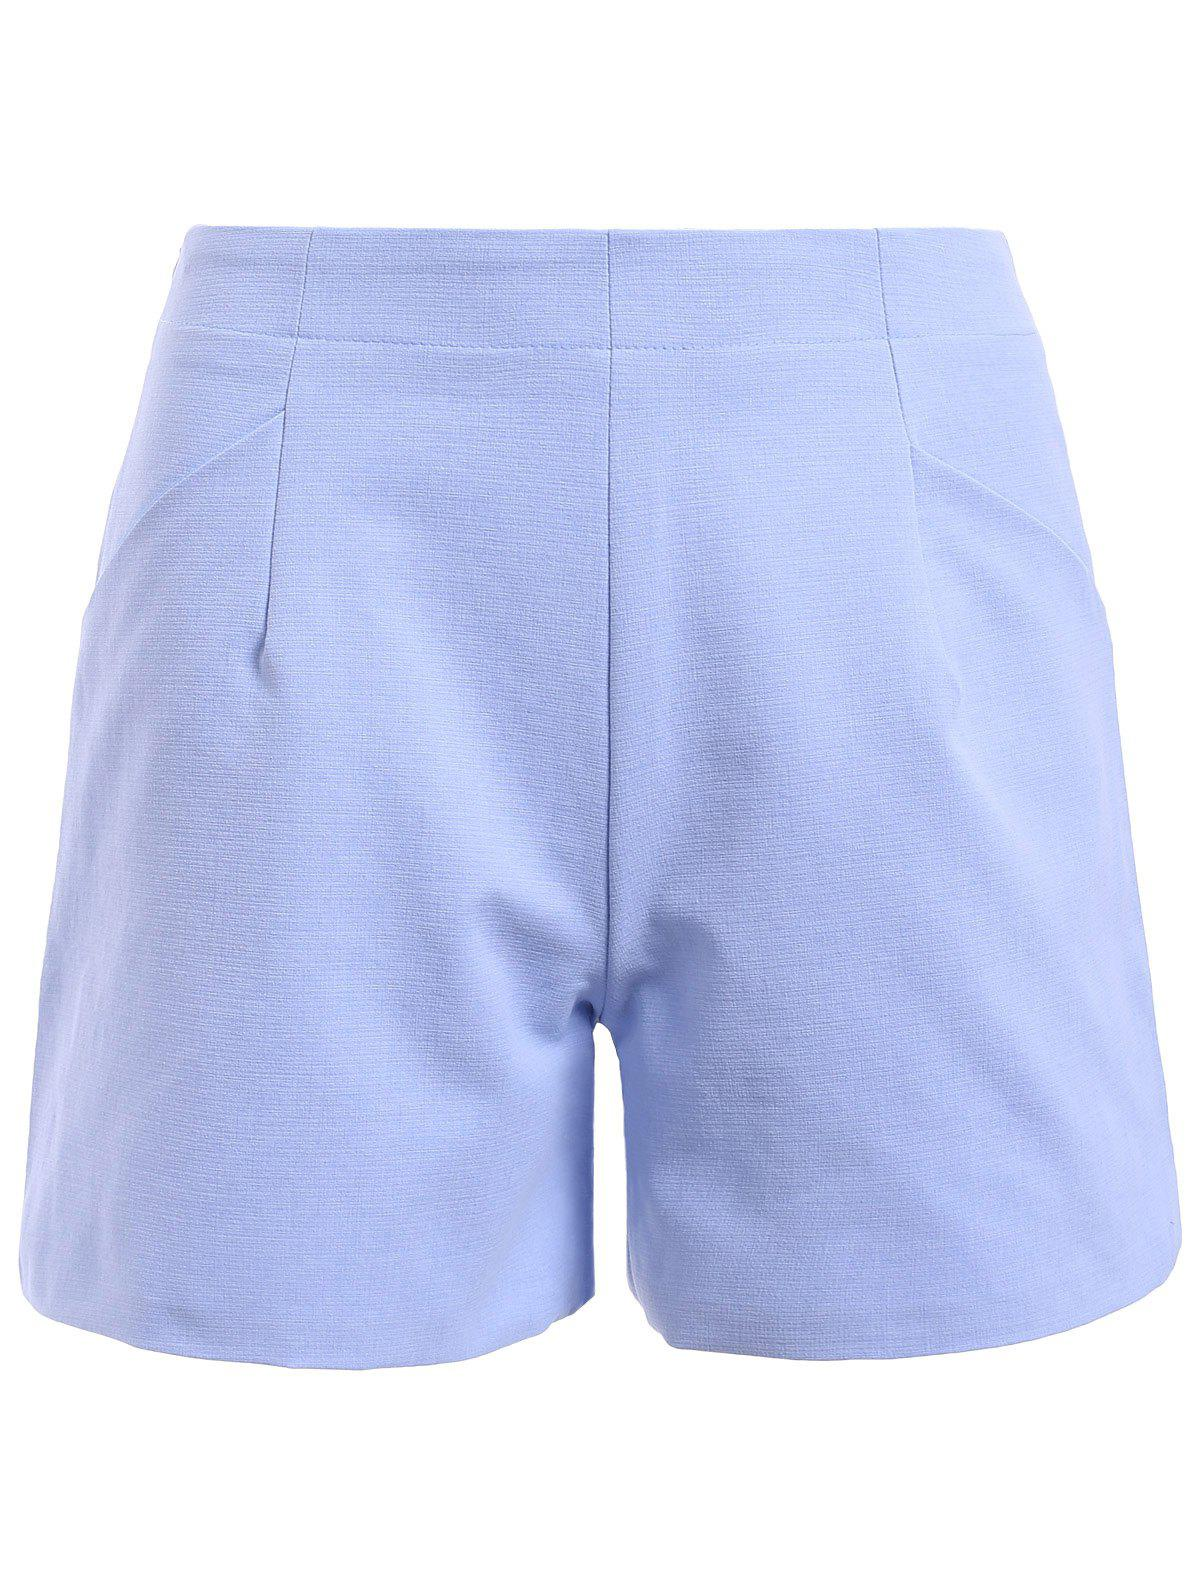 Slimming Women's High-Waisted A-line Shorts - LIGHT BLUE M